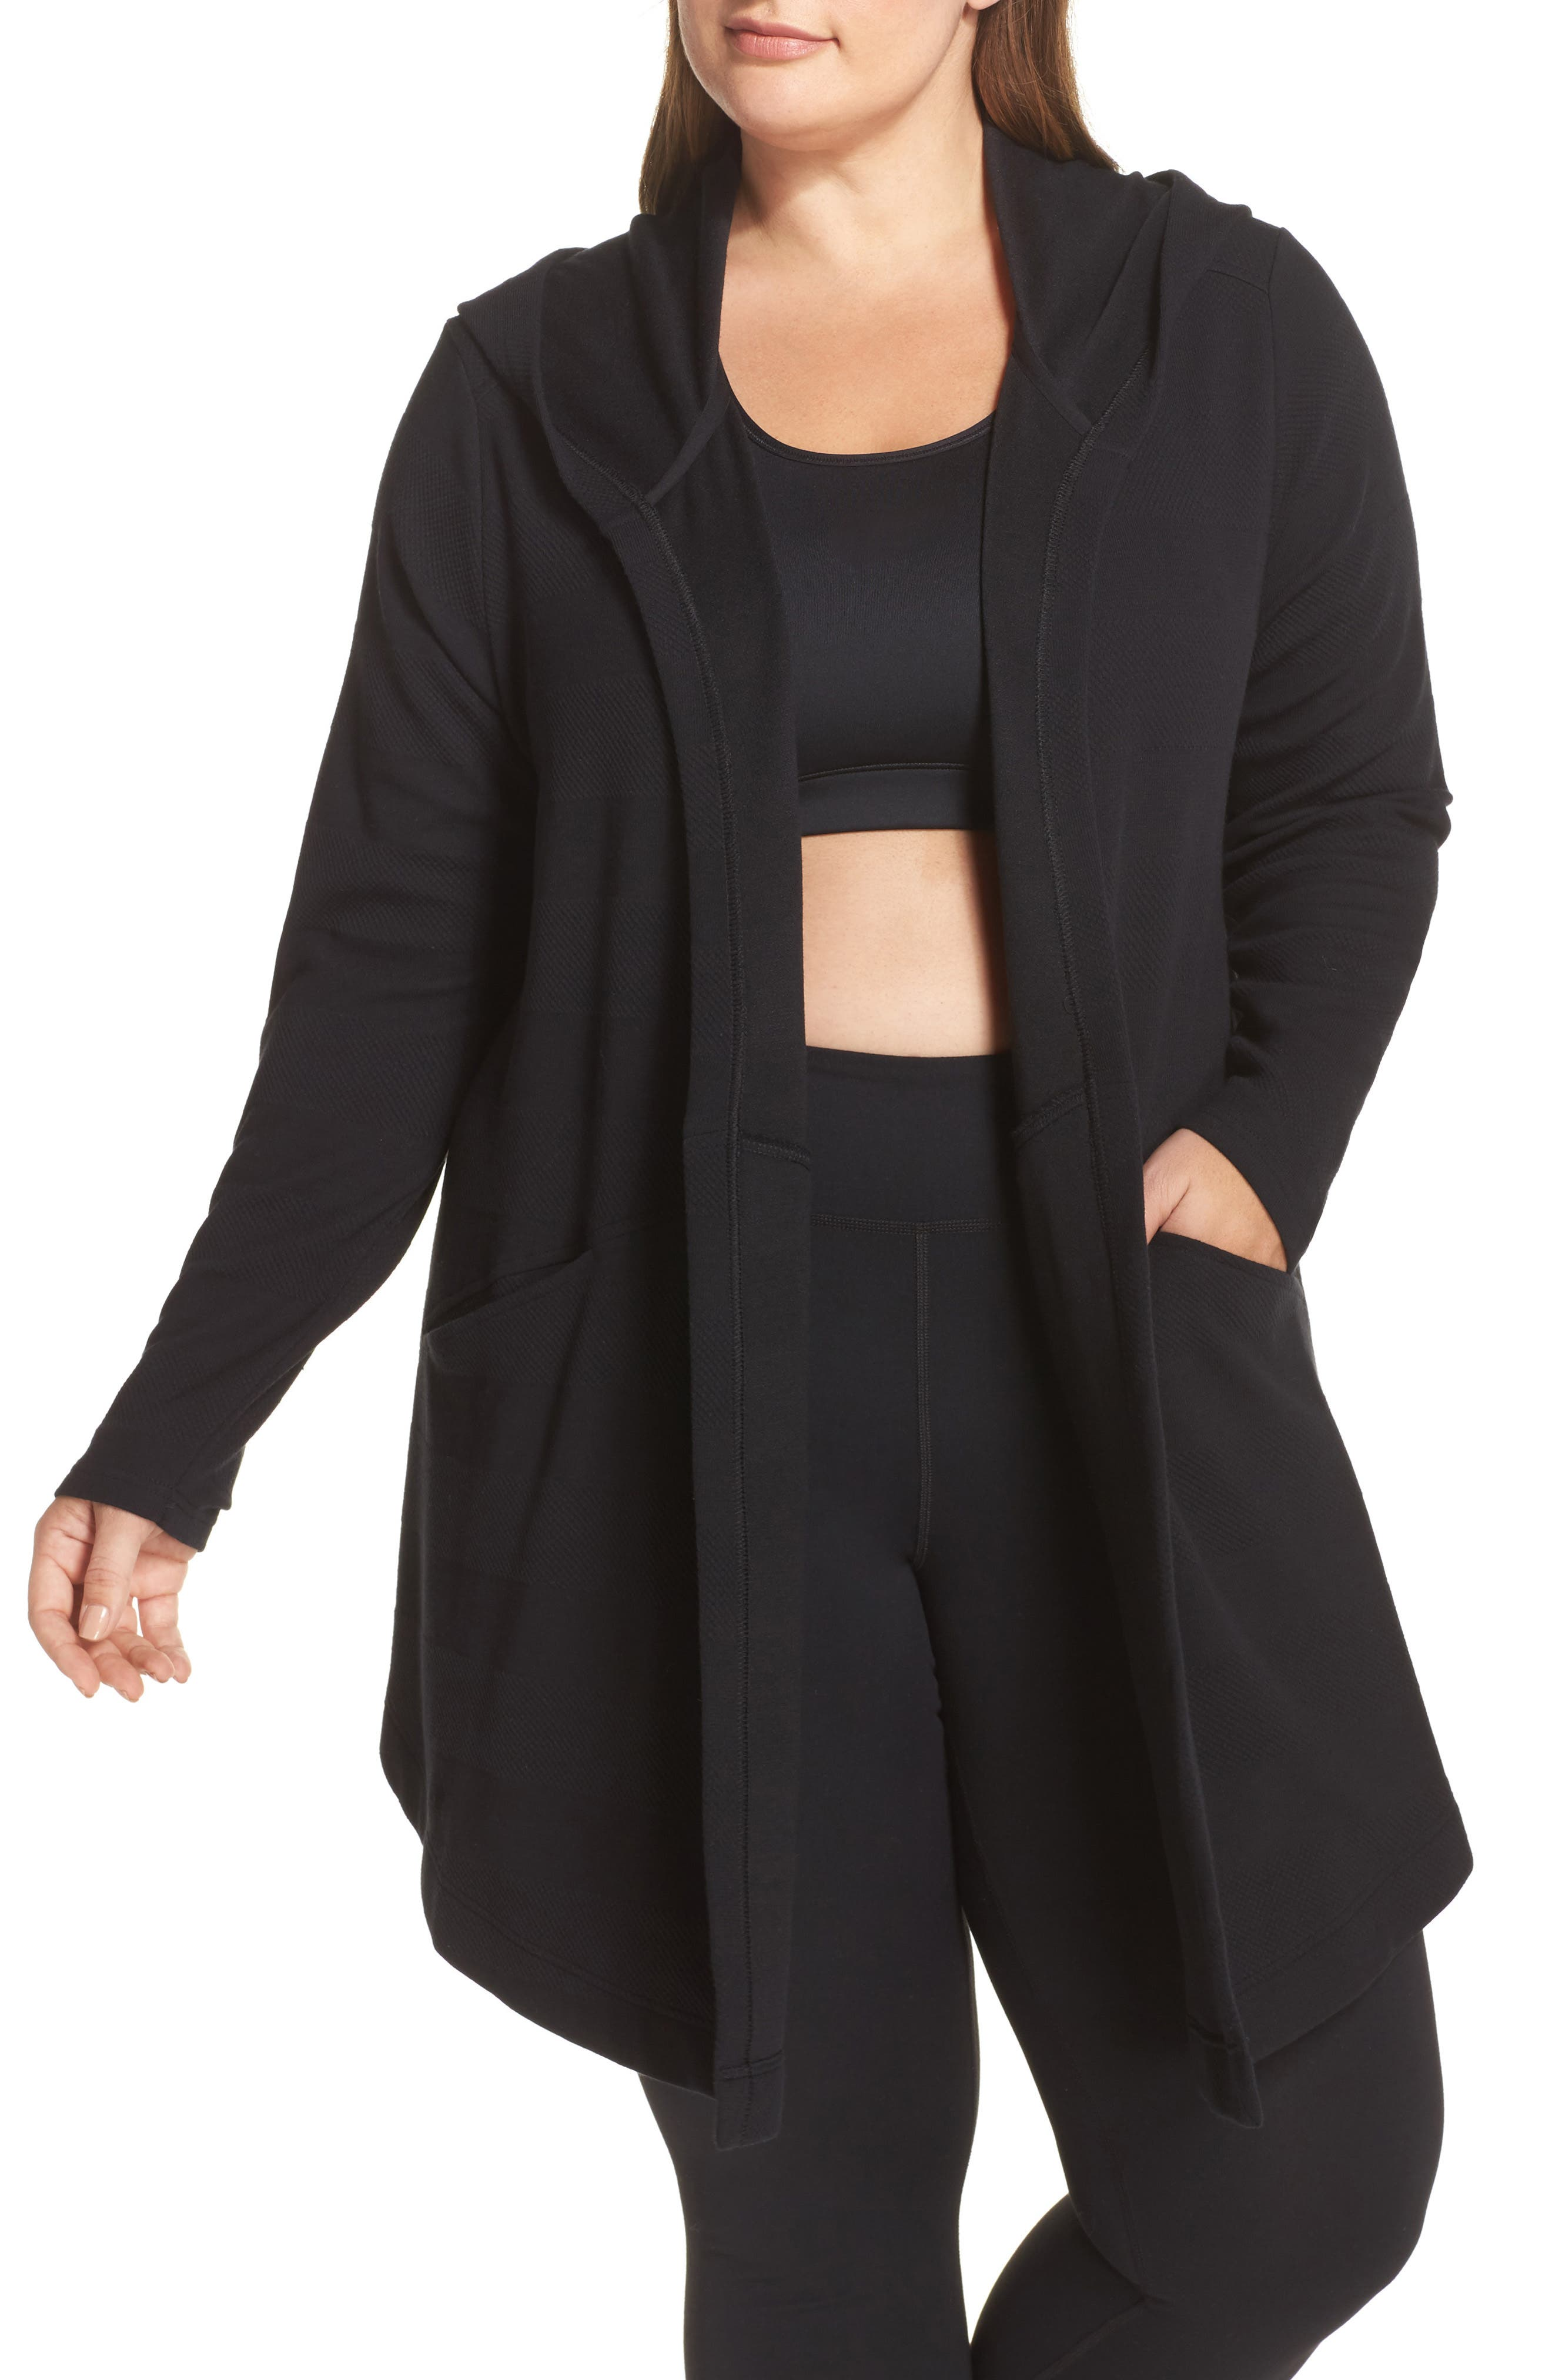 Ria Hooded Cardigan,                         Main,                         color, 001